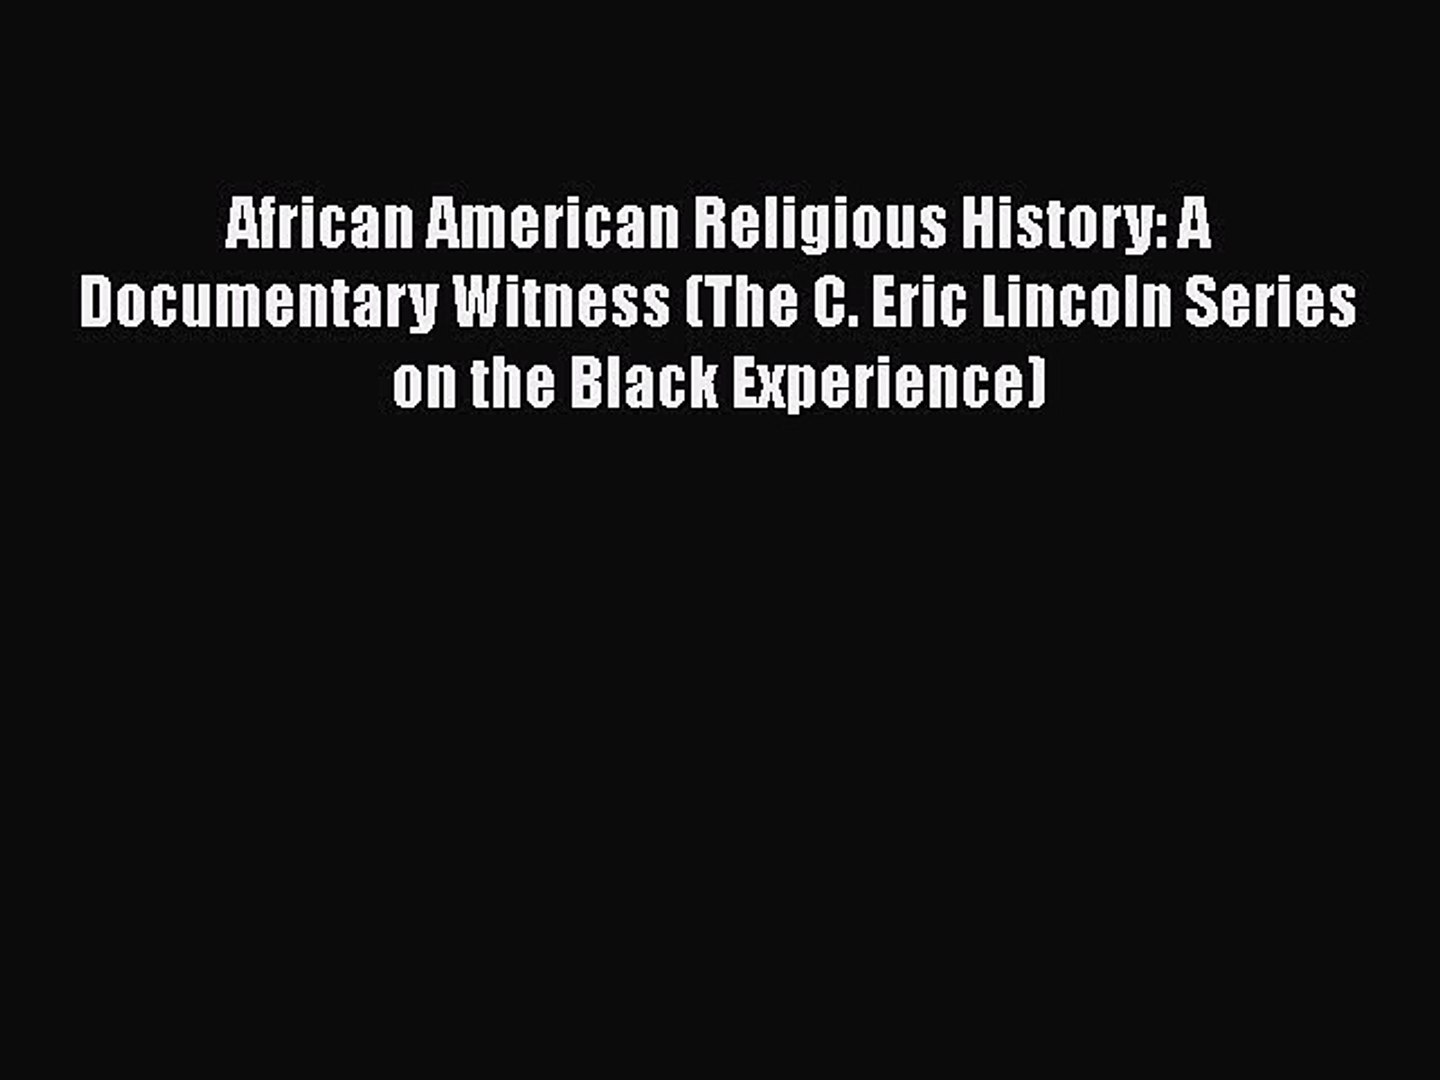 [PDF] African American Religious History: A Documentary Witness (The C. Eric Lincoln Series